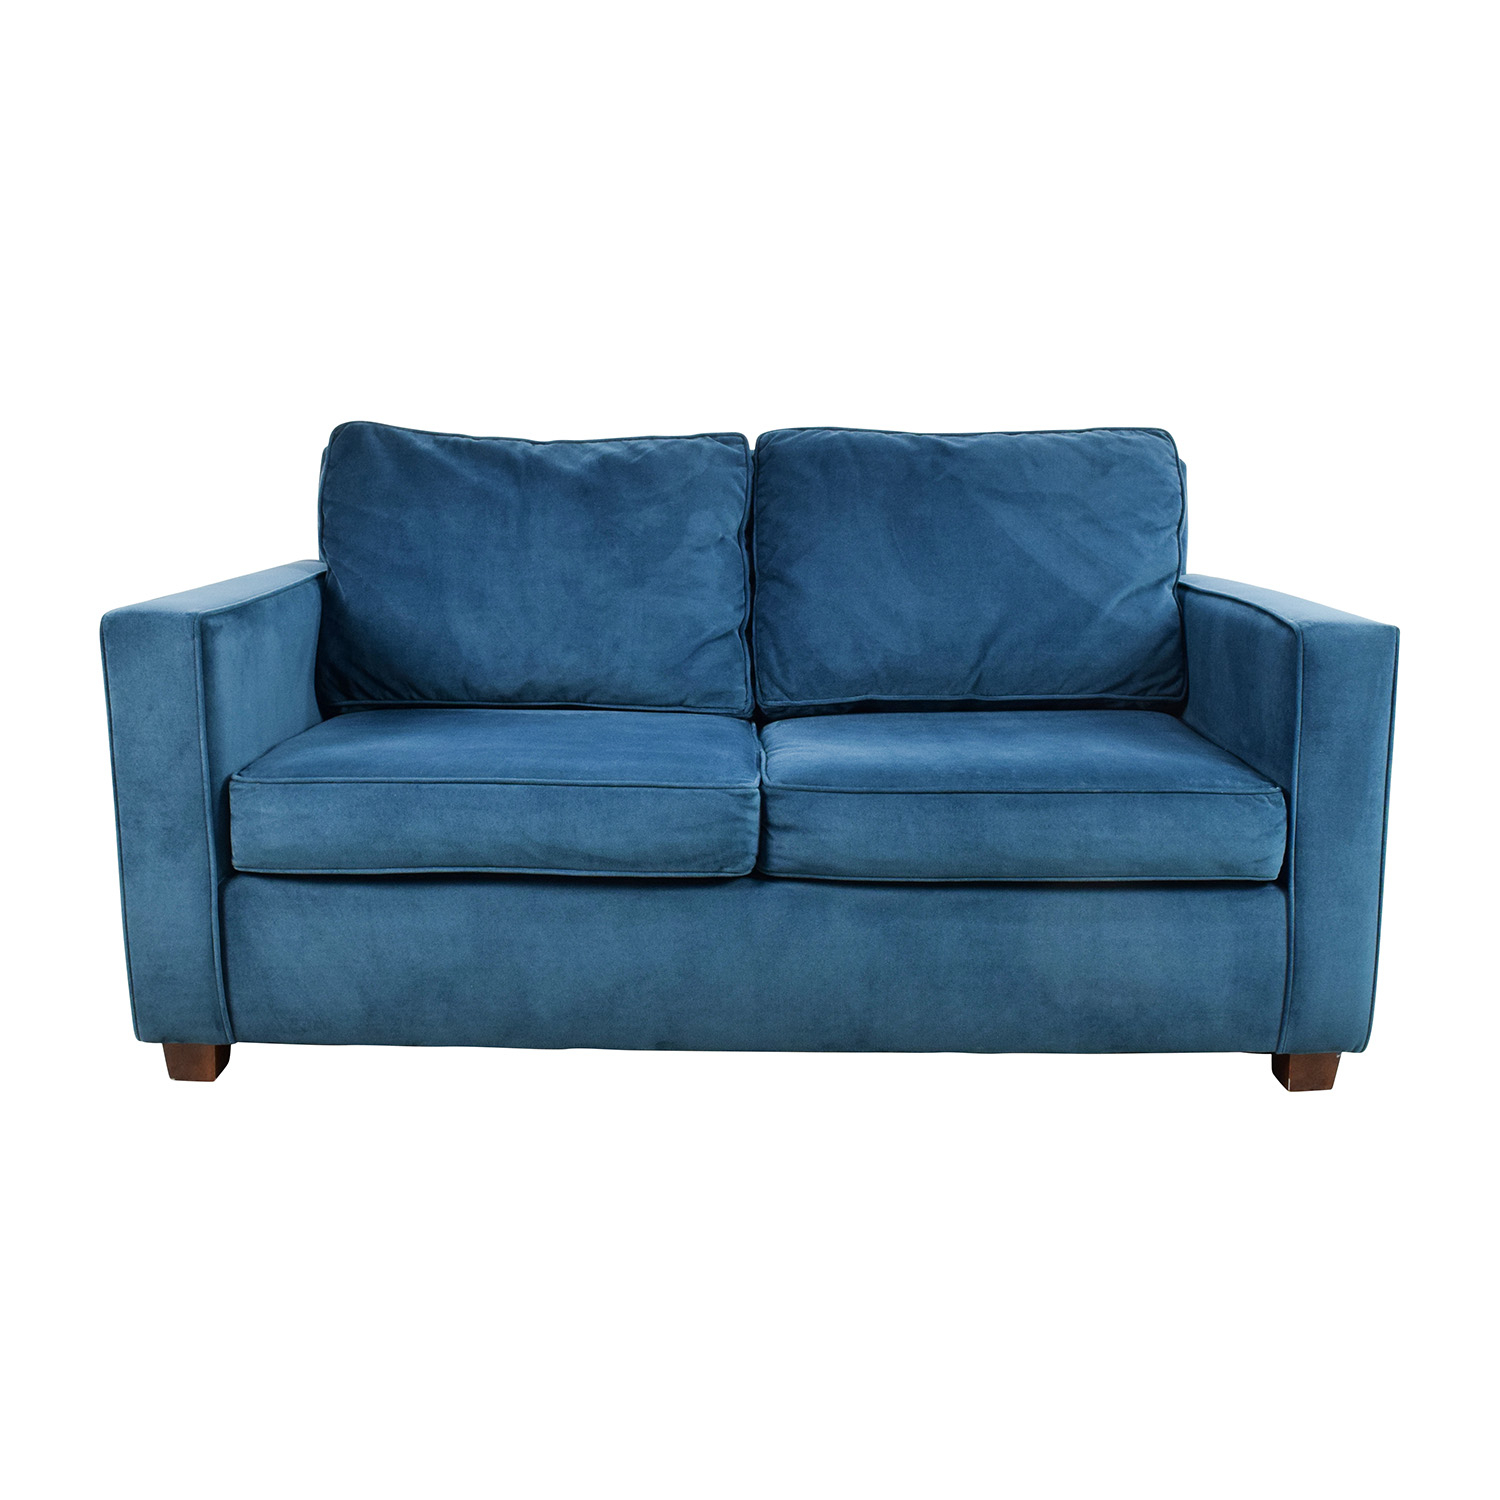 39% Off – West Elm West Elm Celestial Blue Henry Loveseat / Sofas Inside Elm Sofa Chairs (Photo 10 of 25)